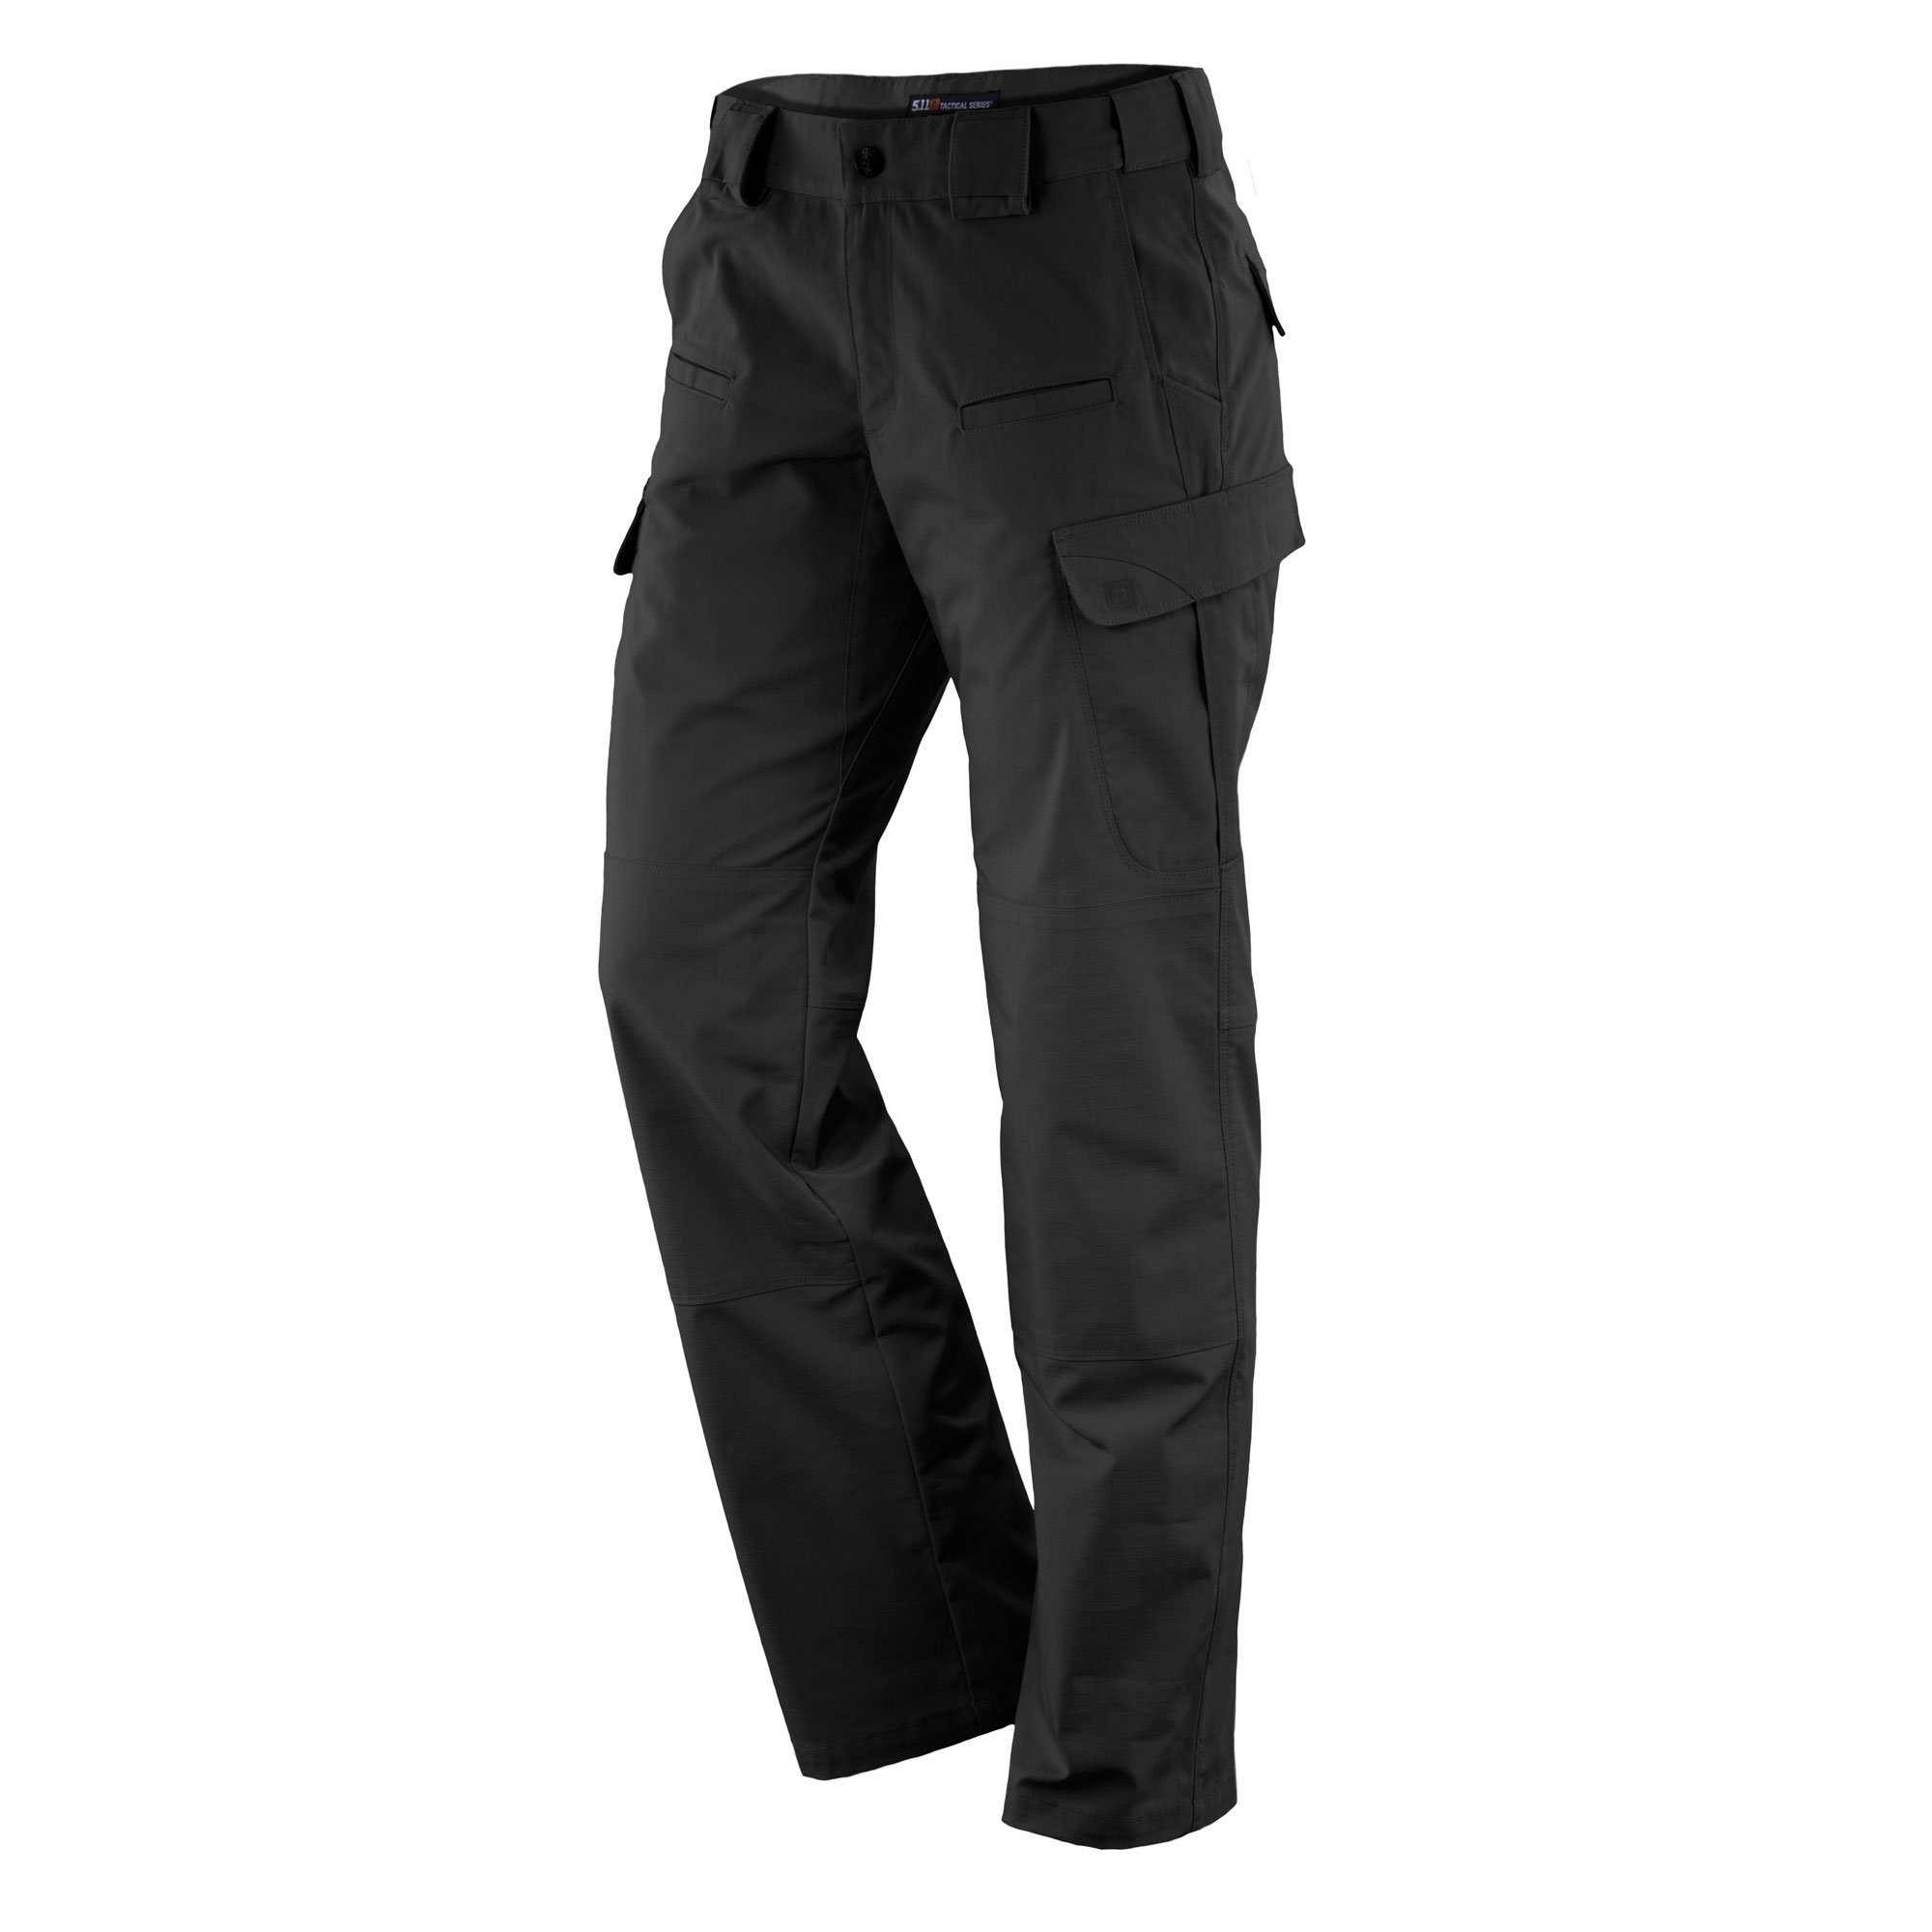 5.11 Tactical Women's Stryke Covert Cargo Pants, Stretchable Fabric, Gusseted Construction, Style 64457 by 5.11